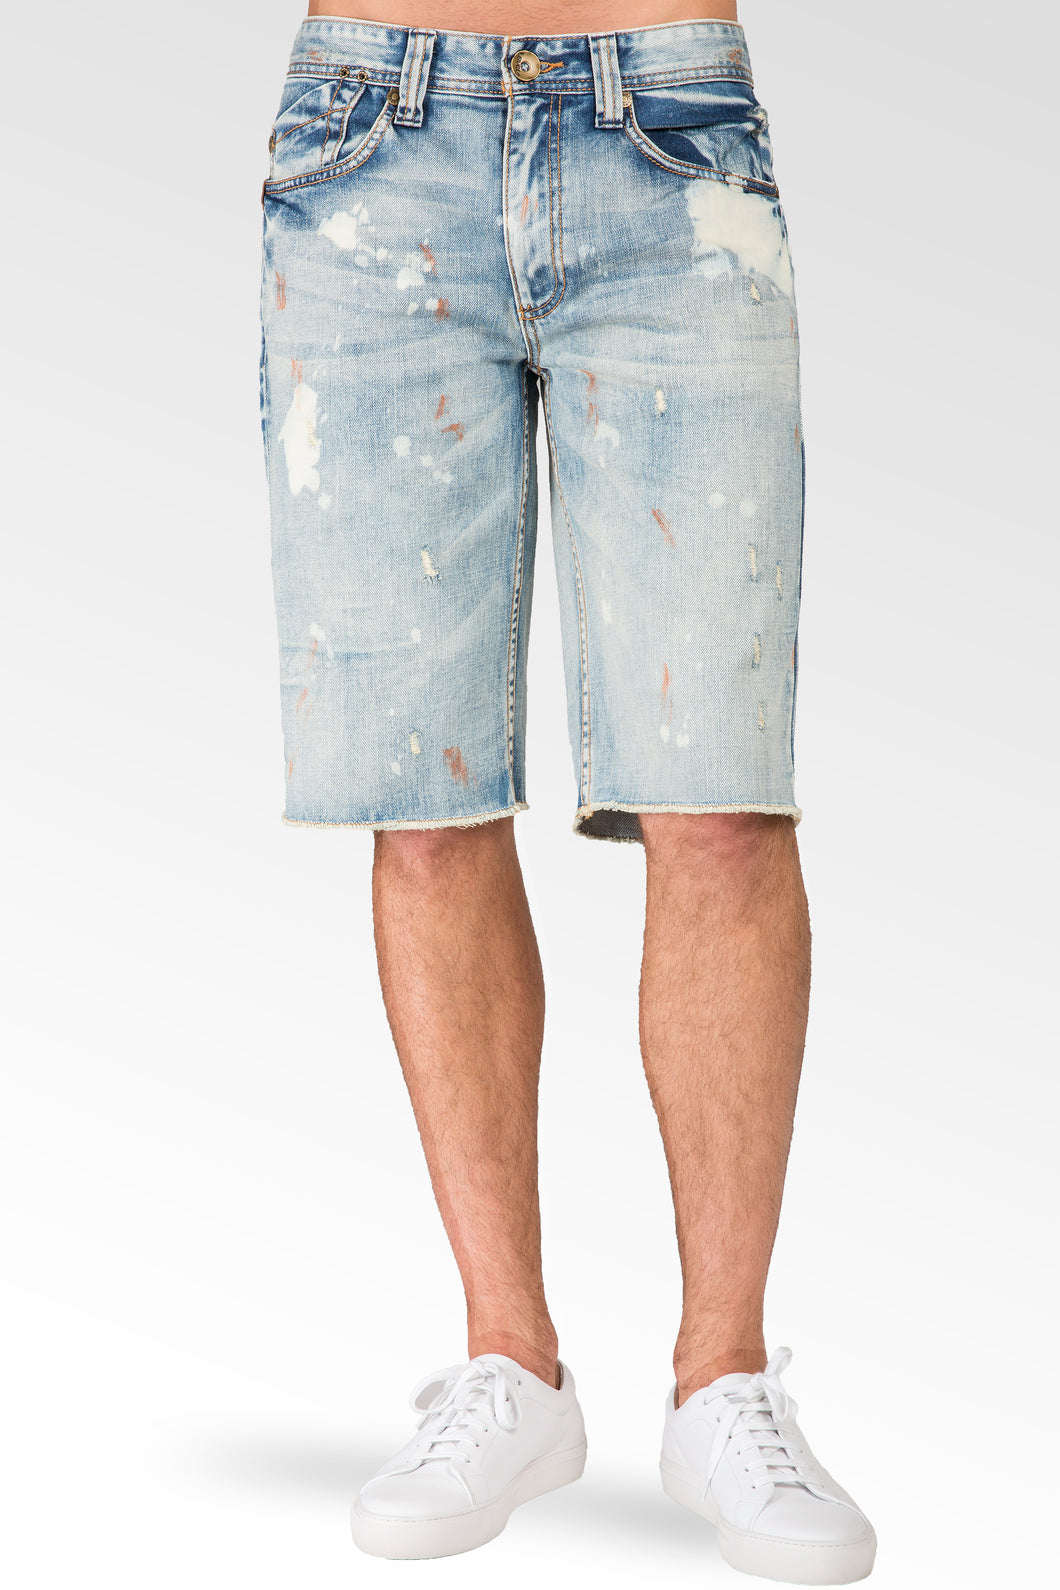 Relaxed Midrise Cut Off Jean Shorts Bleach Blue Smudging 13